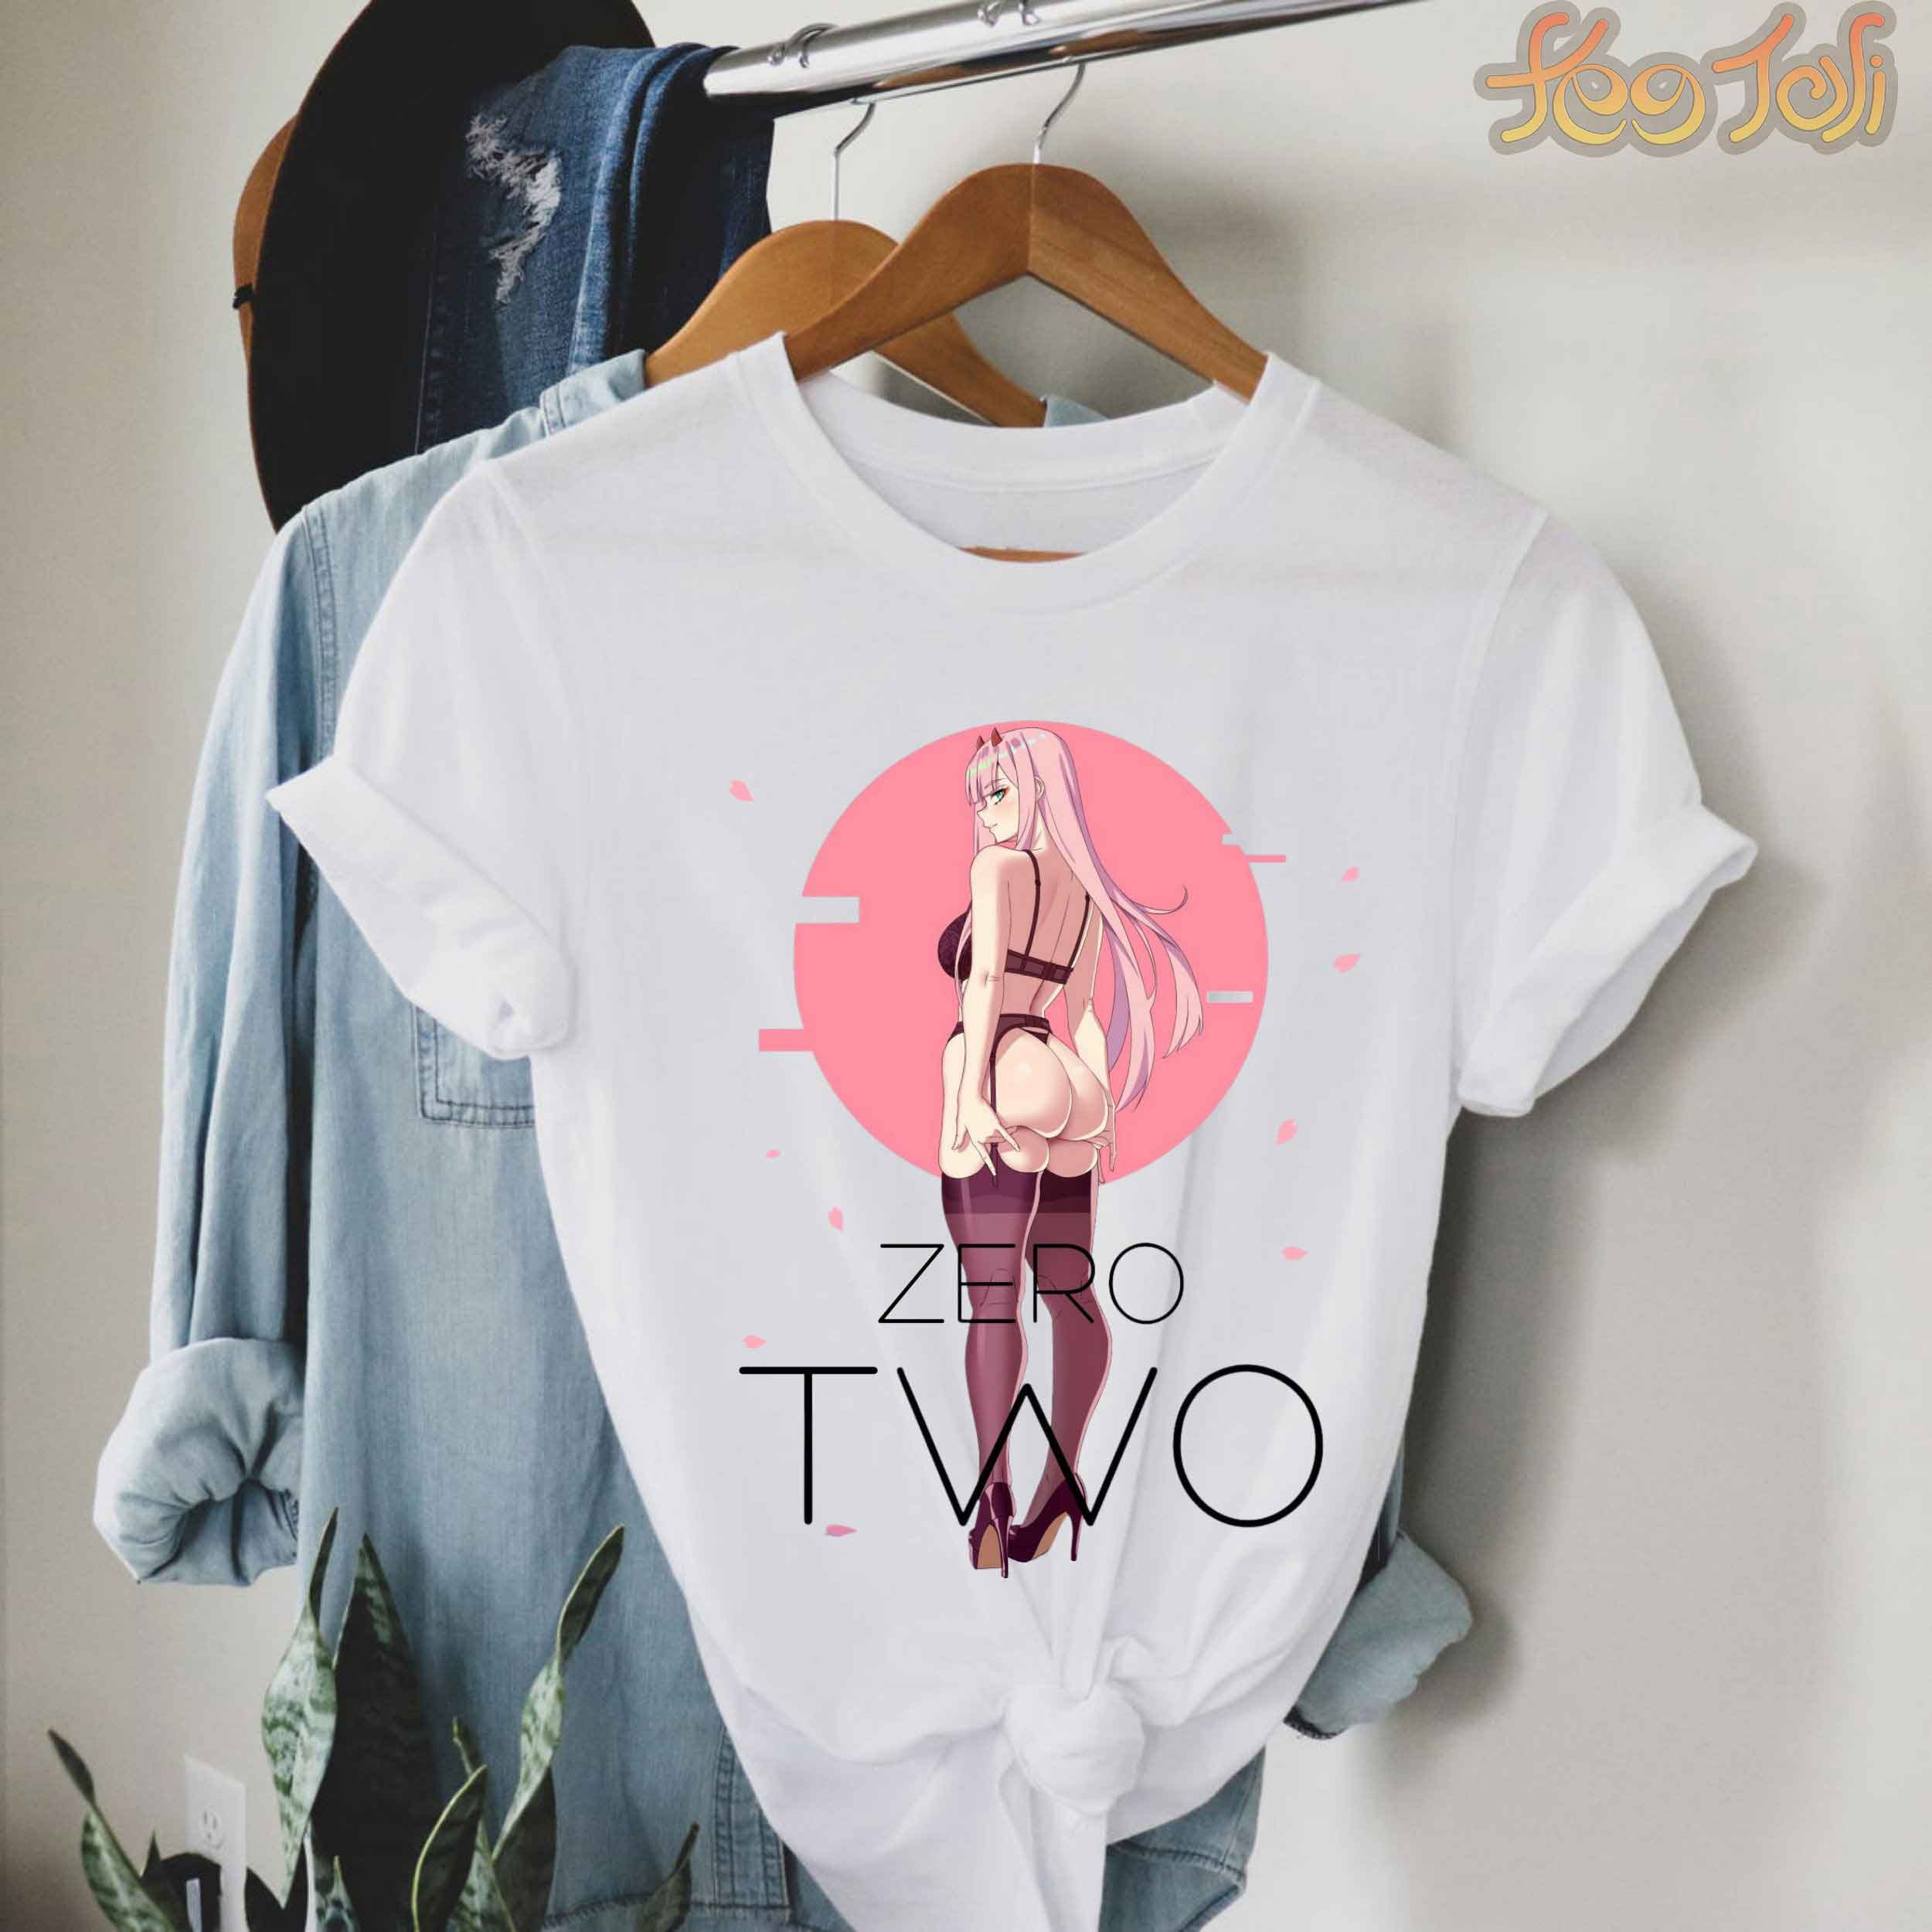 Zero Two - darling in the franxx t shirt